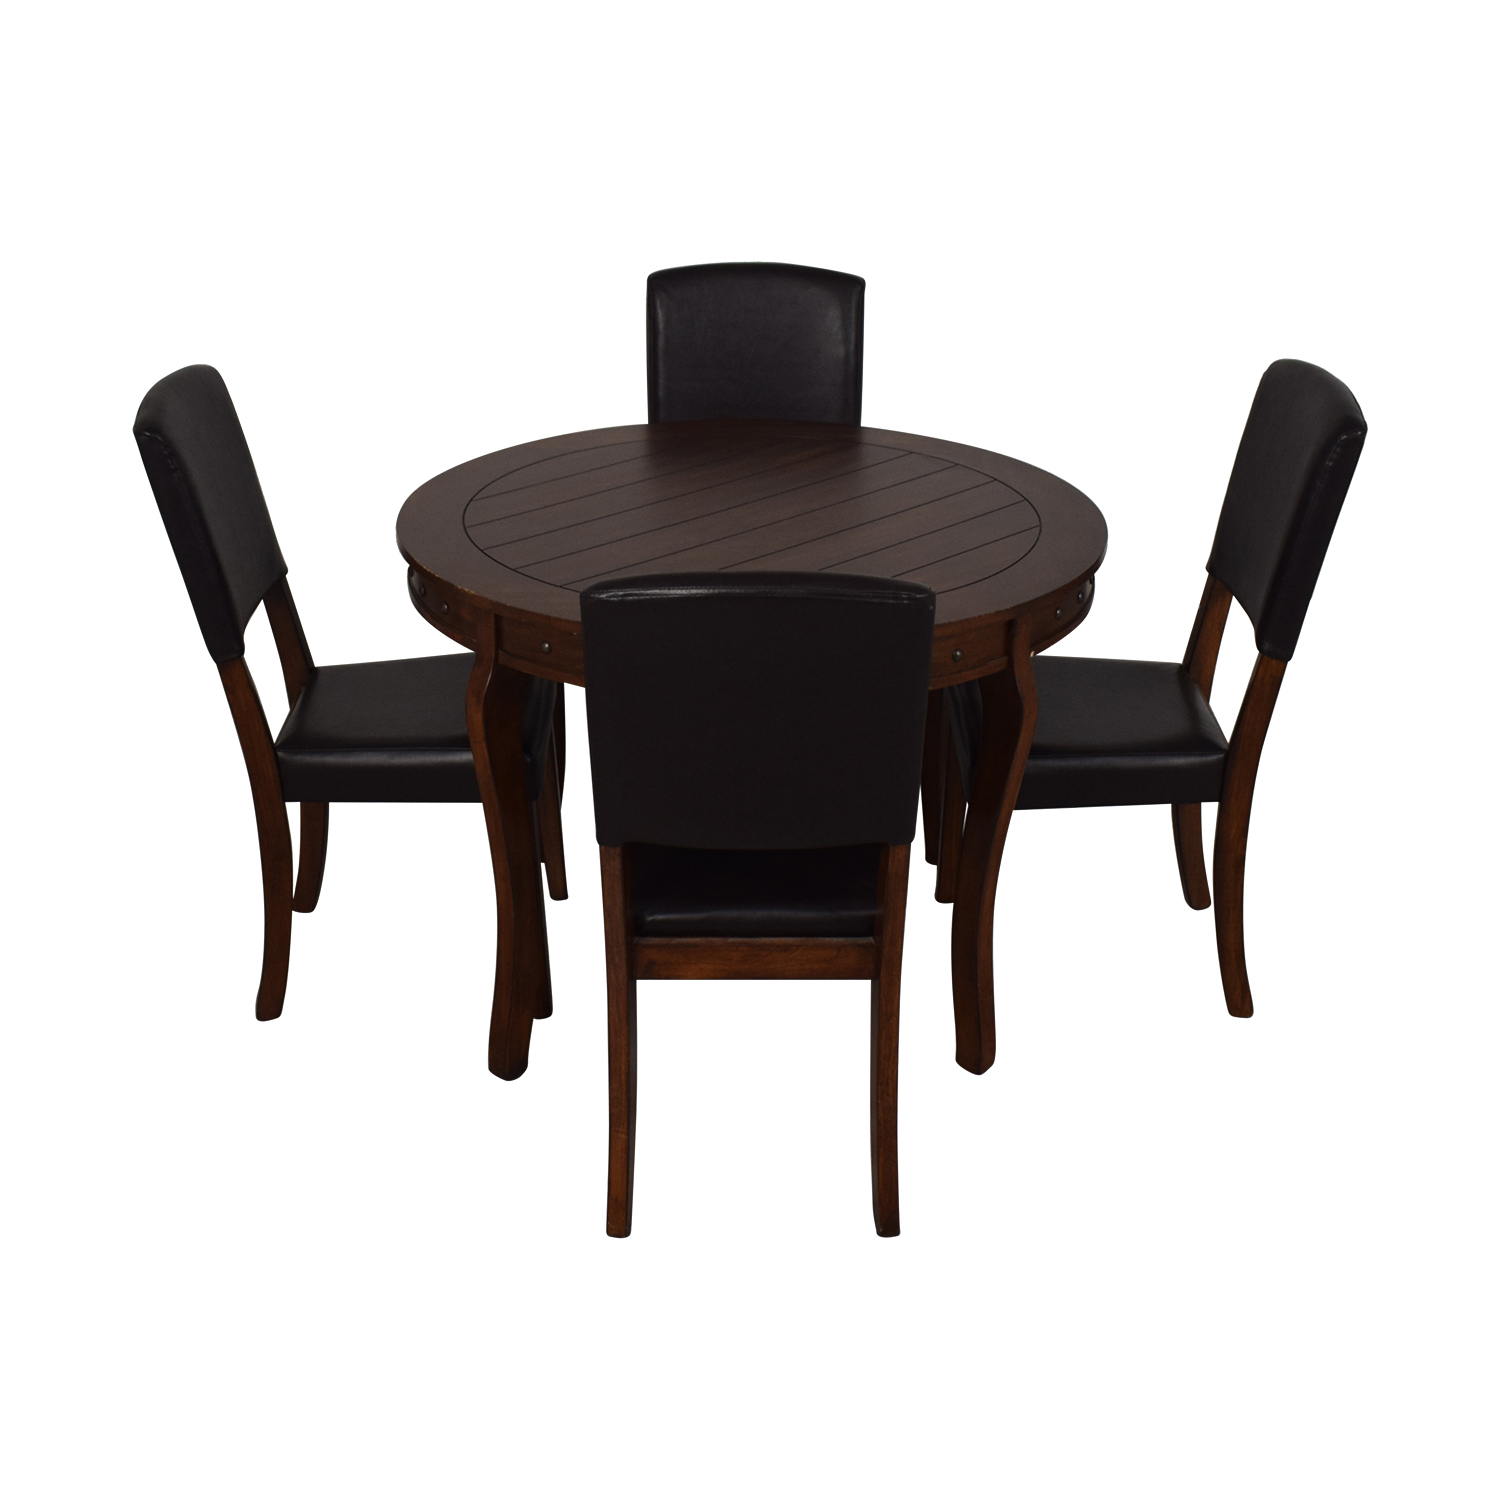 Ashley Furniture Ashley Furniture Round Dining Table with Chairs for sale